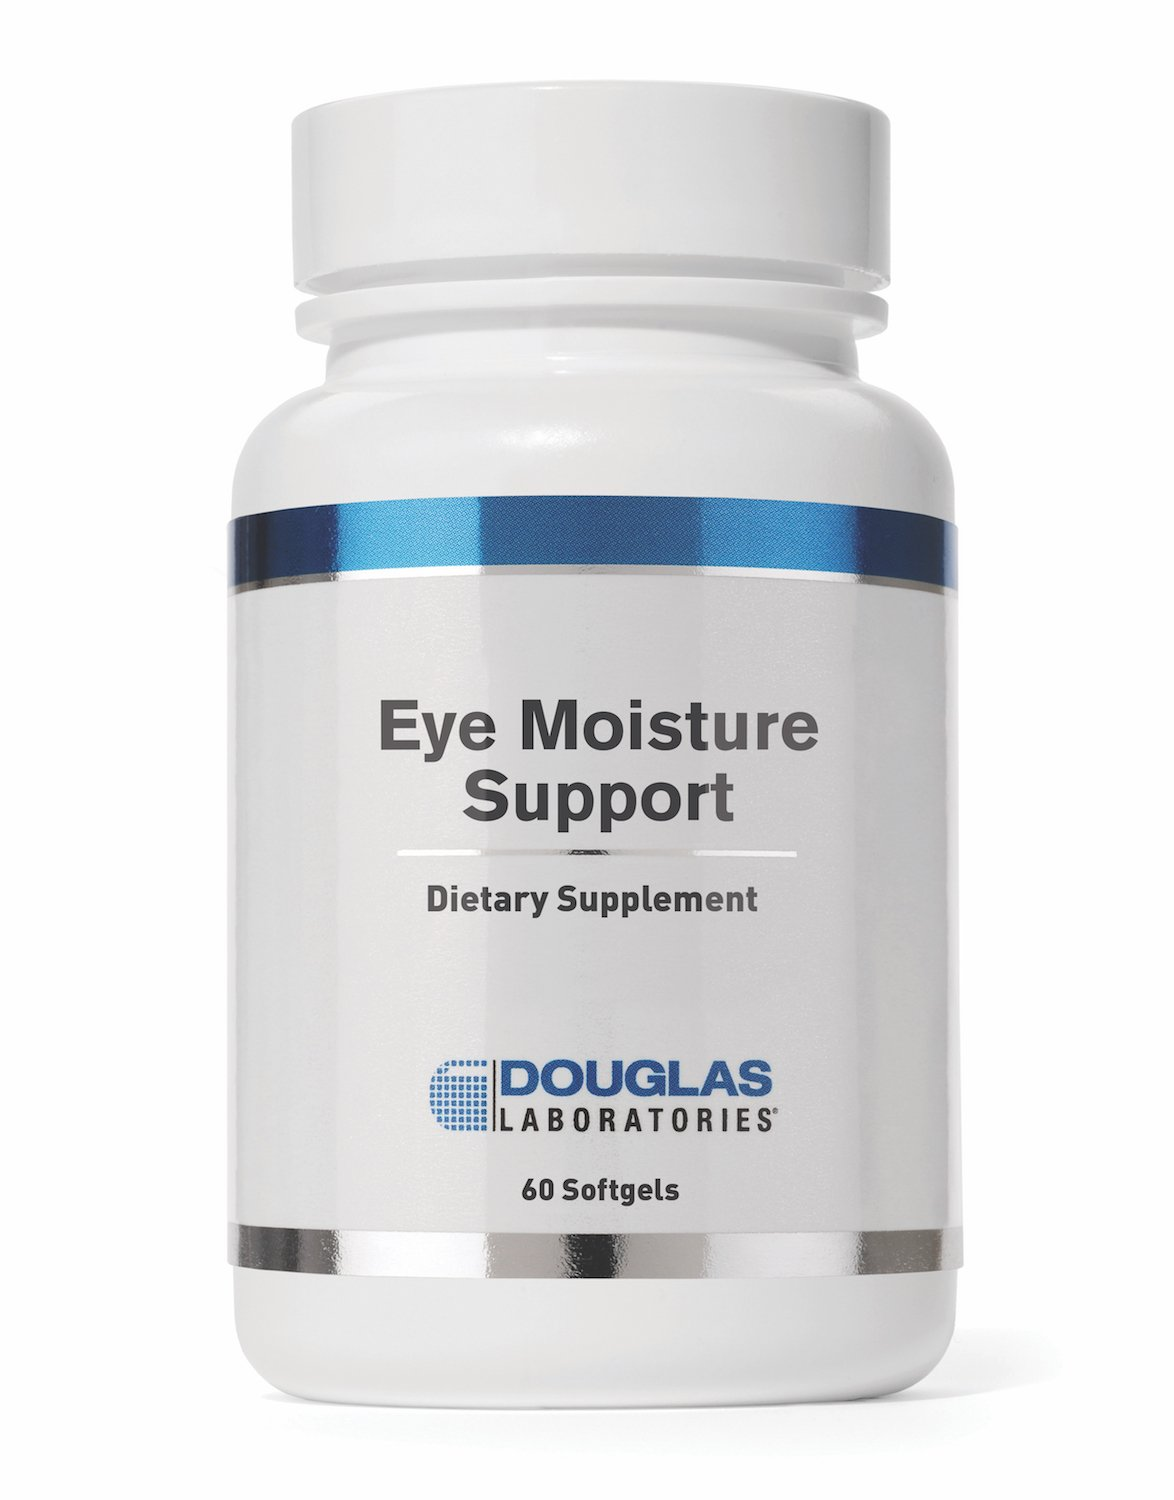 Douglas Laboratories - Eye Moisture Support - Antioxidant Support with Omega-3 Fatty Acids including EPA, DHA, and GLA - 60 Softgels